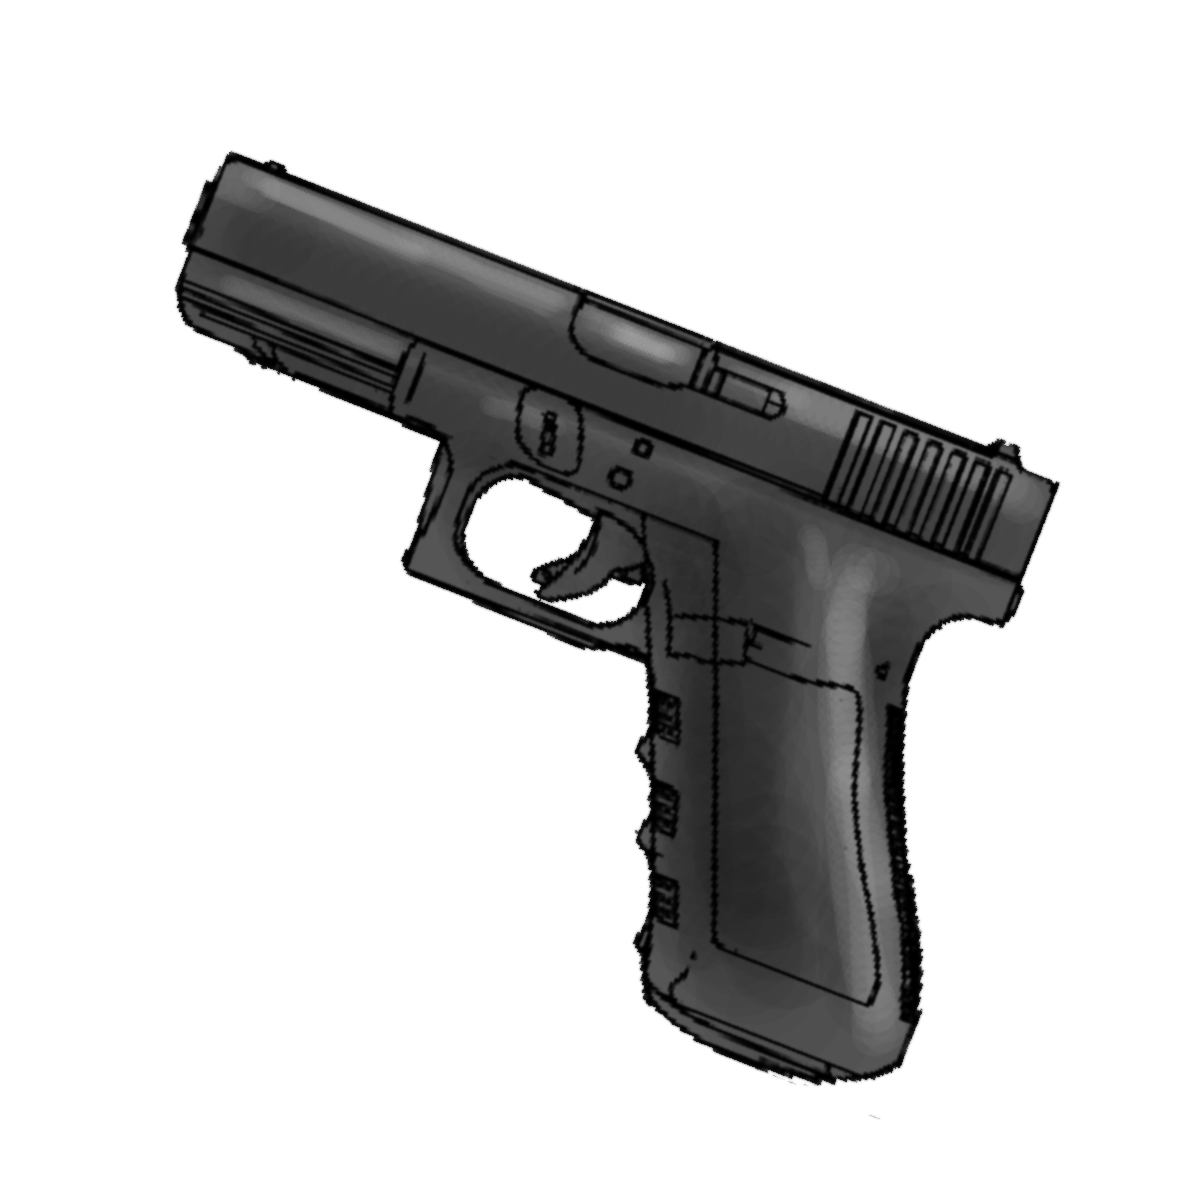 Pin 9mm Gun Sketch On Pinterest